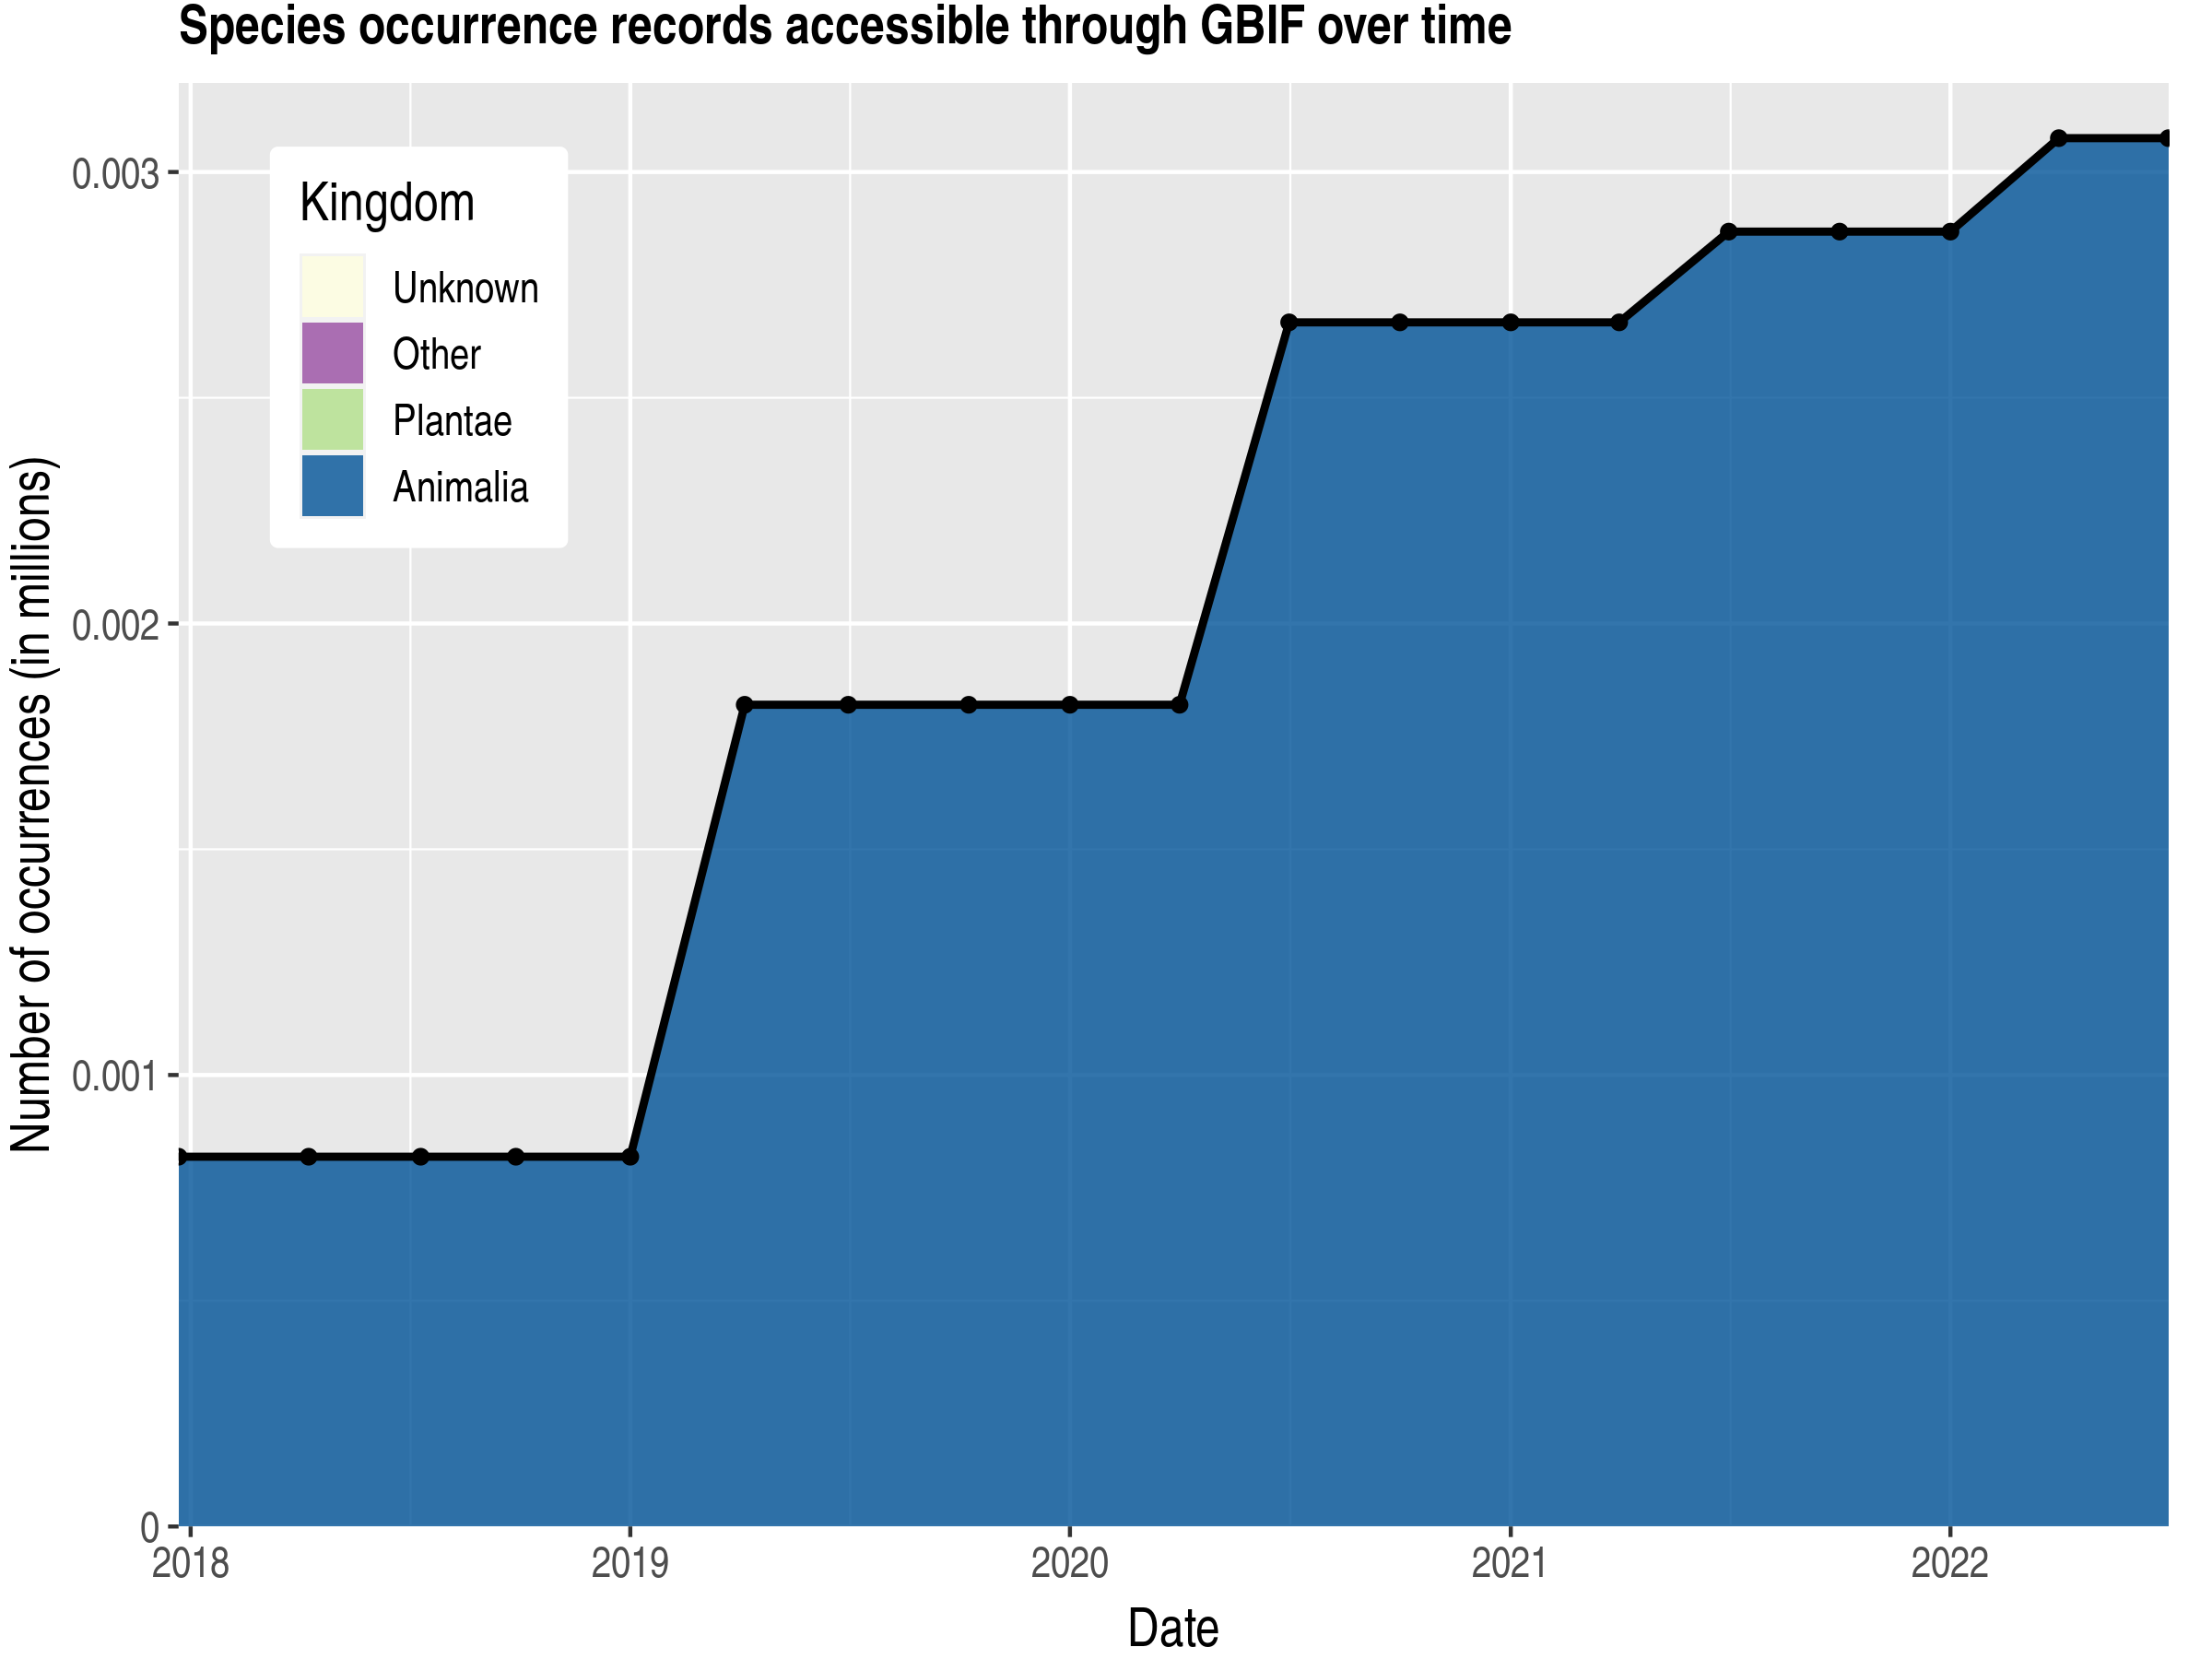 Data trend of records by kingdom published by Saint Helena, Ascension and Tristan da Cunha